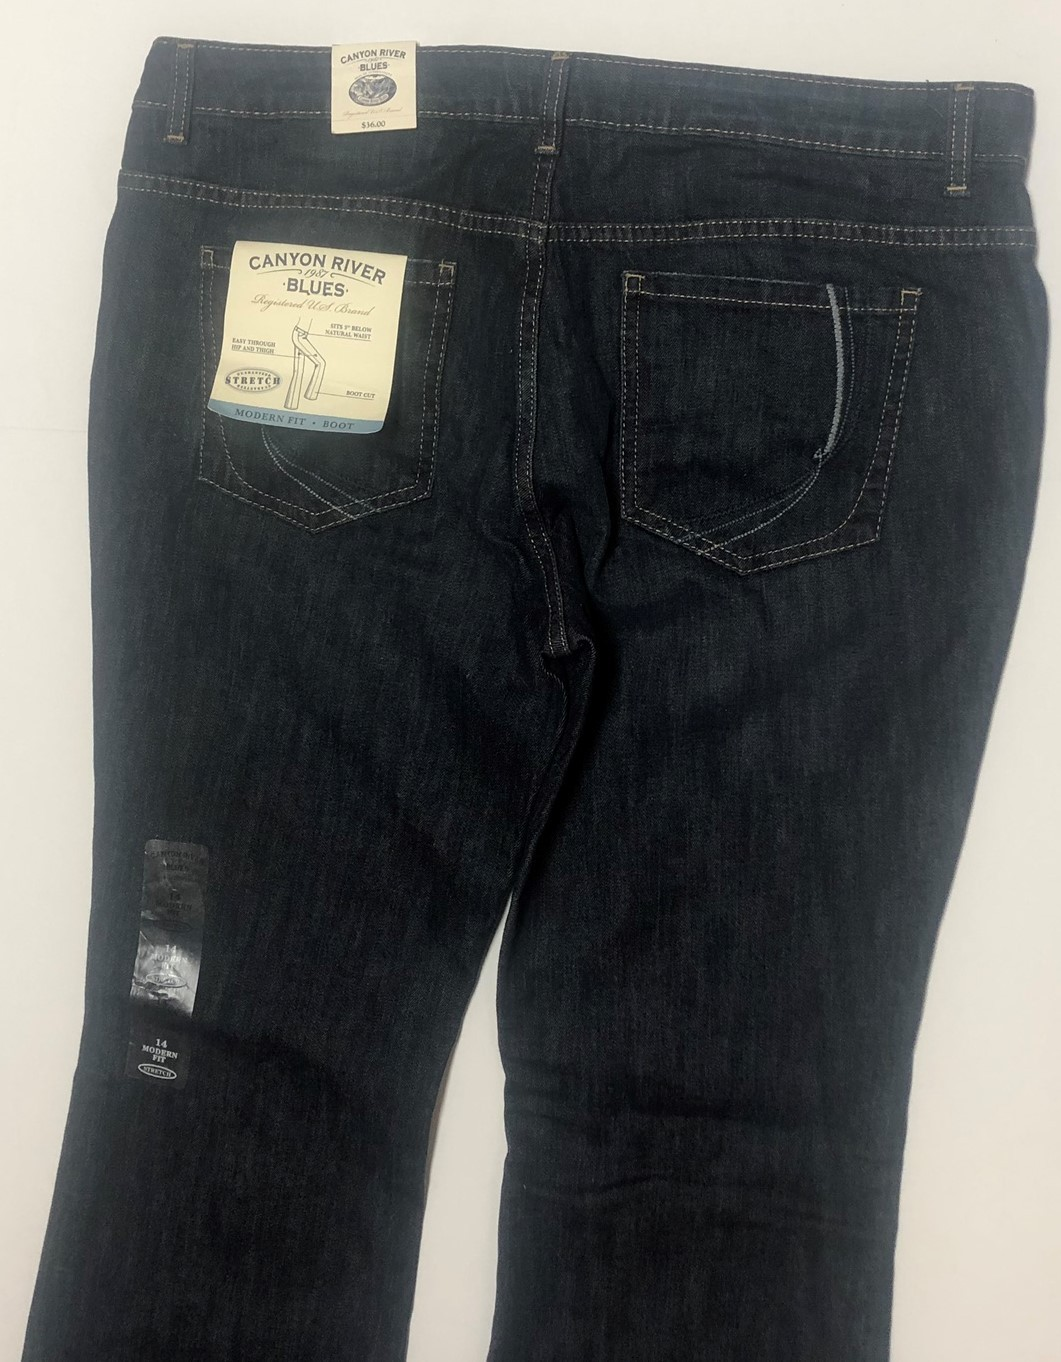 Canyon River Blues Jeans Boot Cut Low Waist Sz 14 Average Stretch image 6